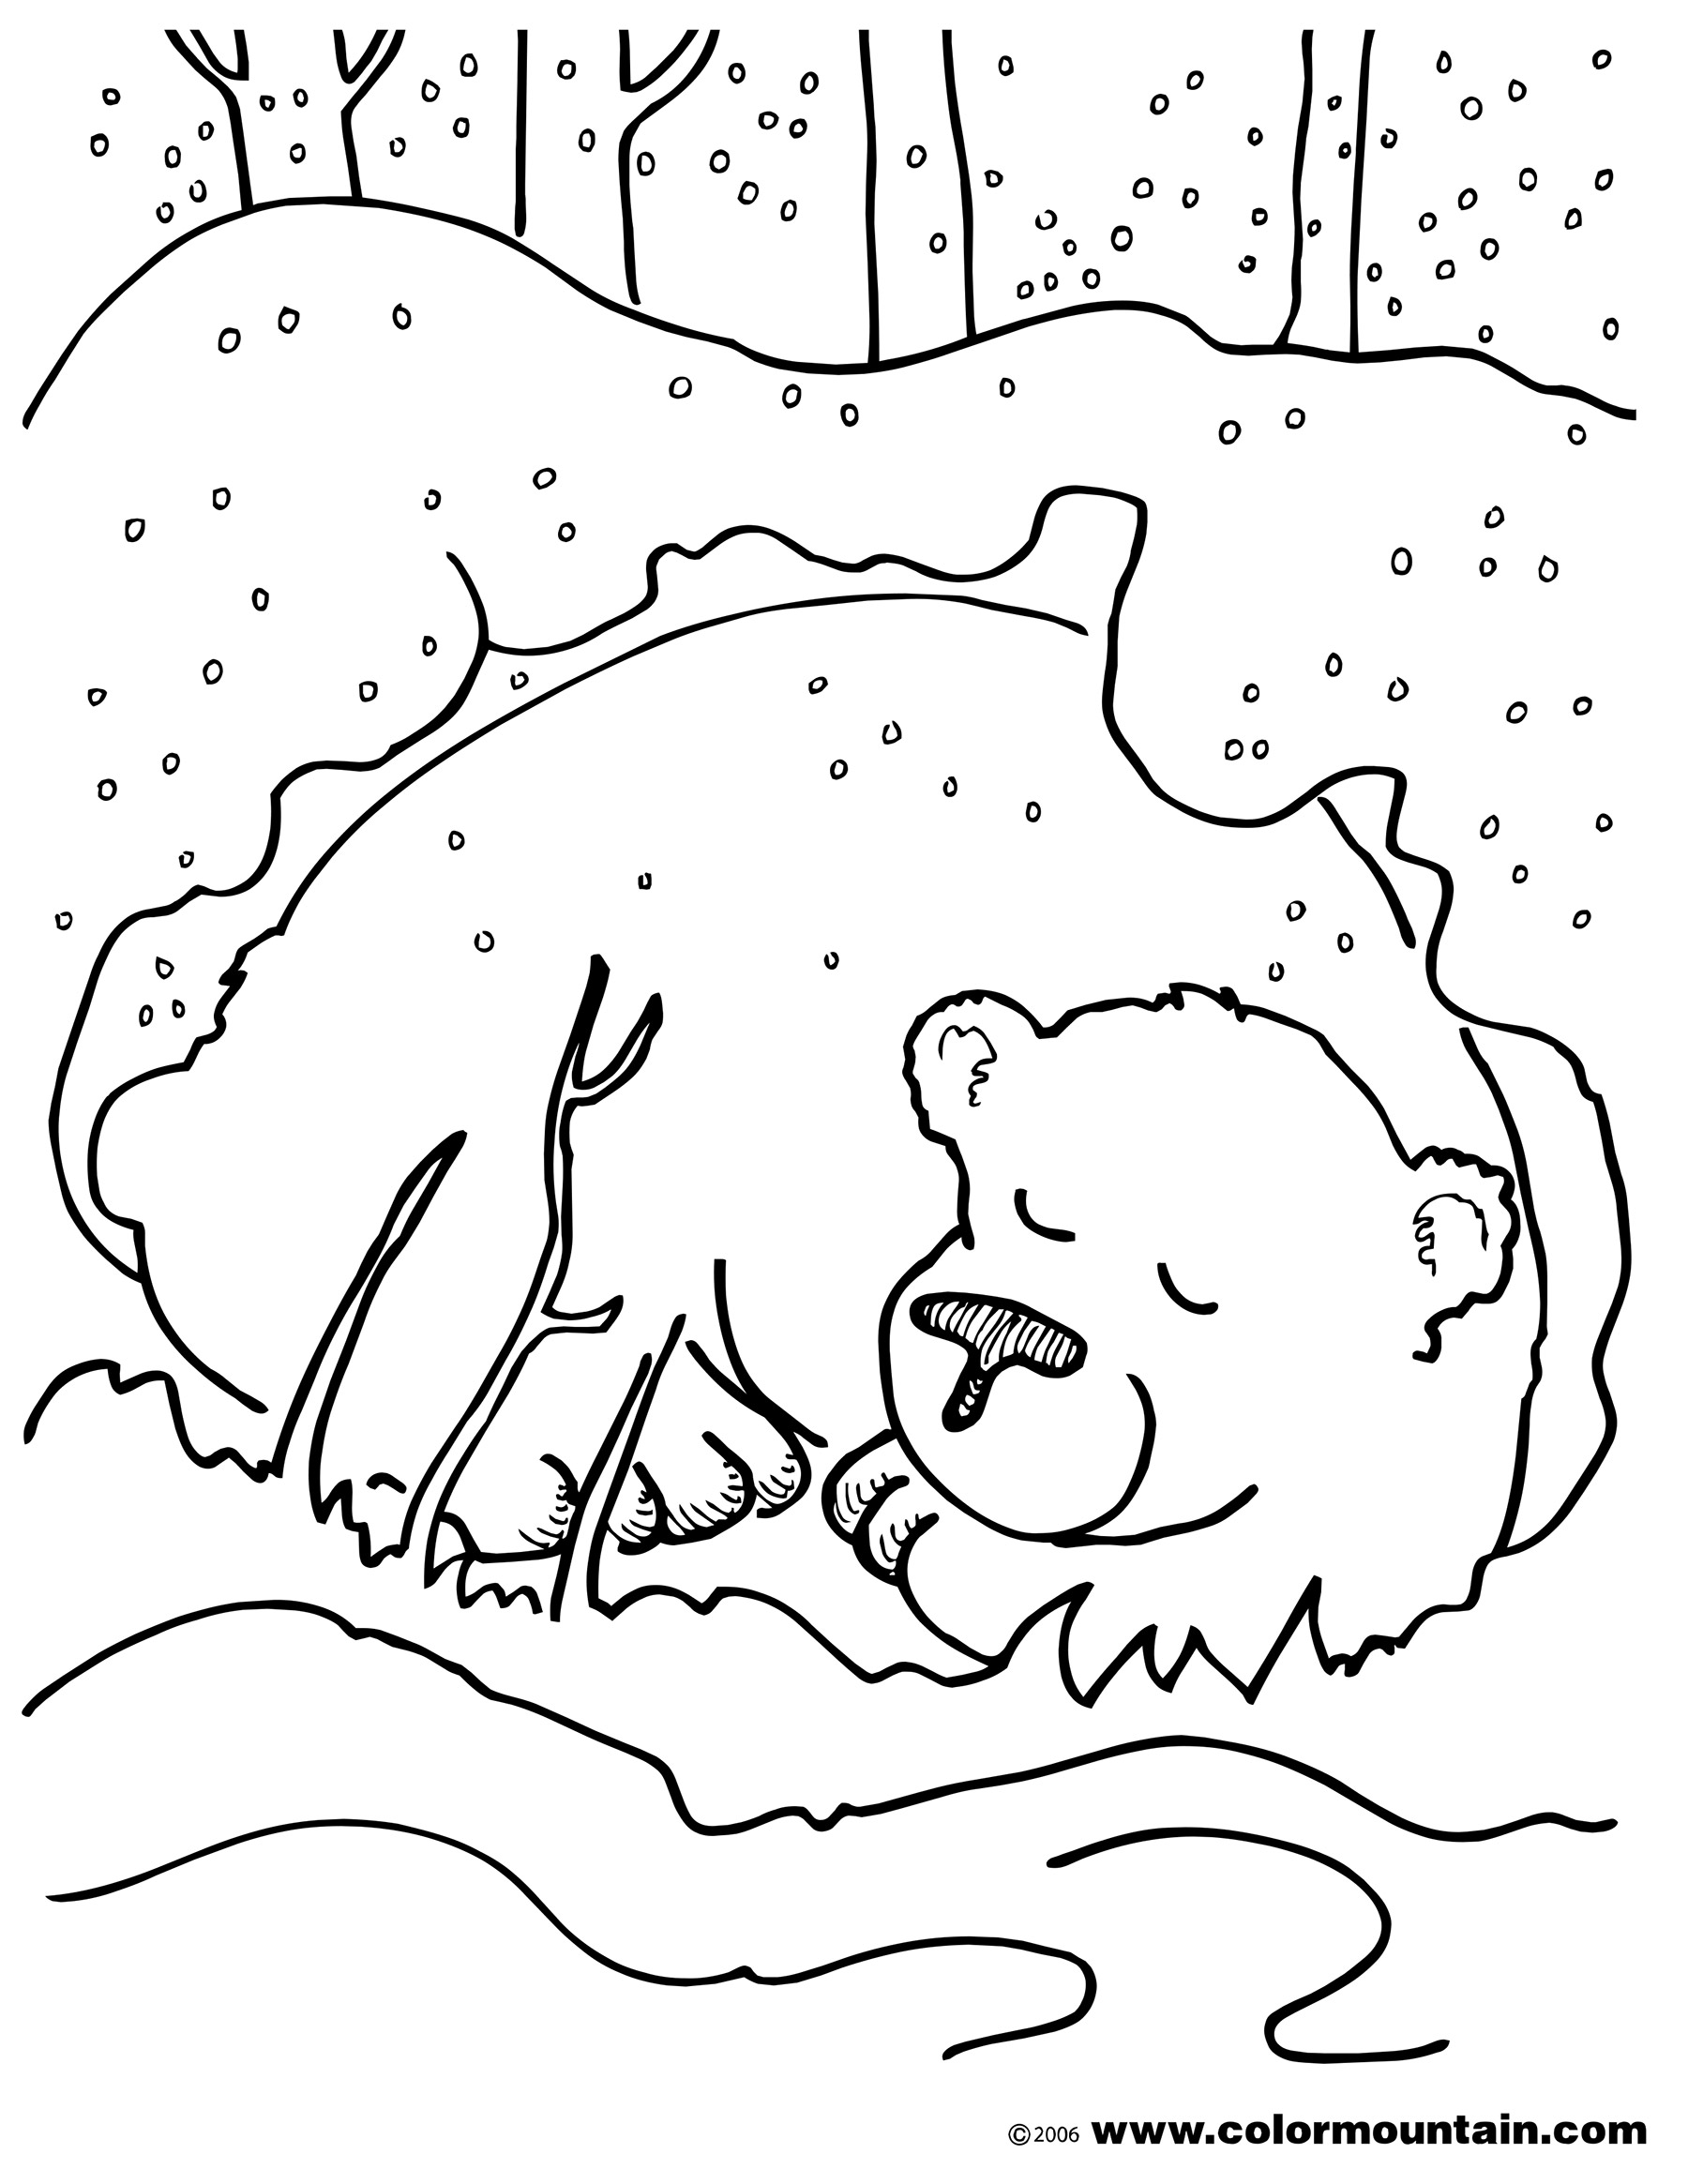 Cave clipart outline. Bear drawing at getdrawings